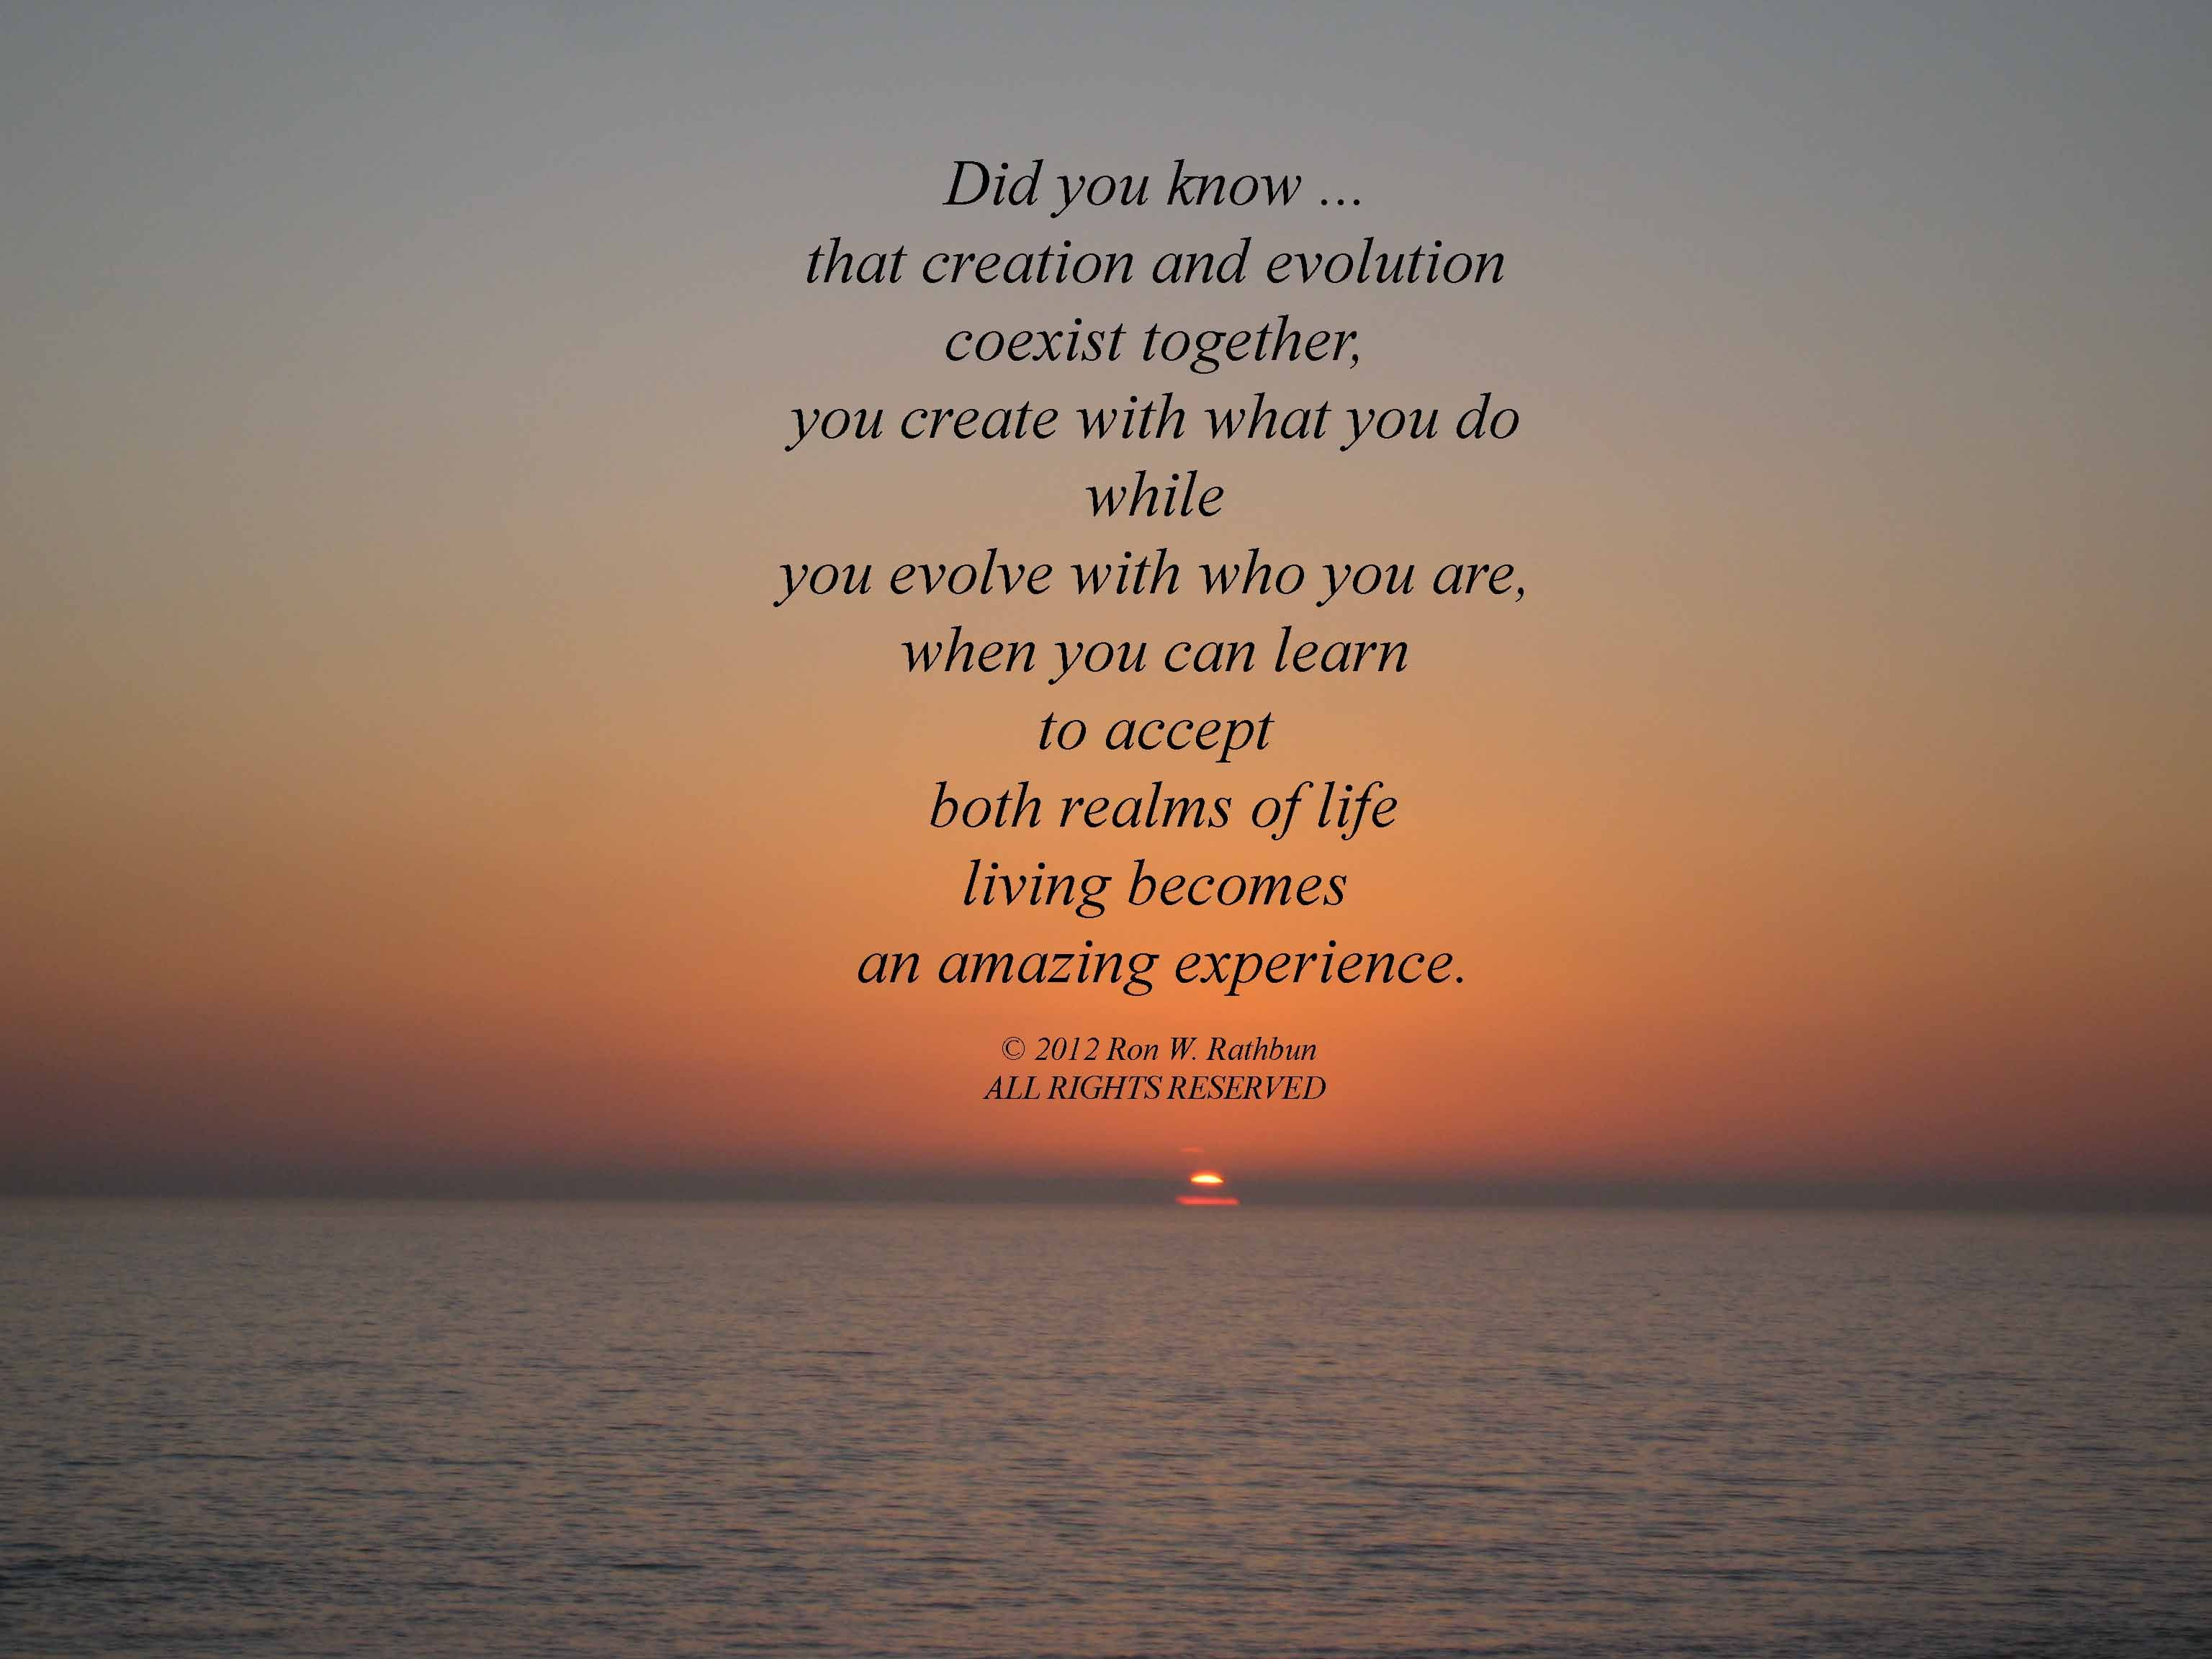 Reflection Quotes About Life Enchanting The Quote Was From The Mind And Self_Reflectiondescription From